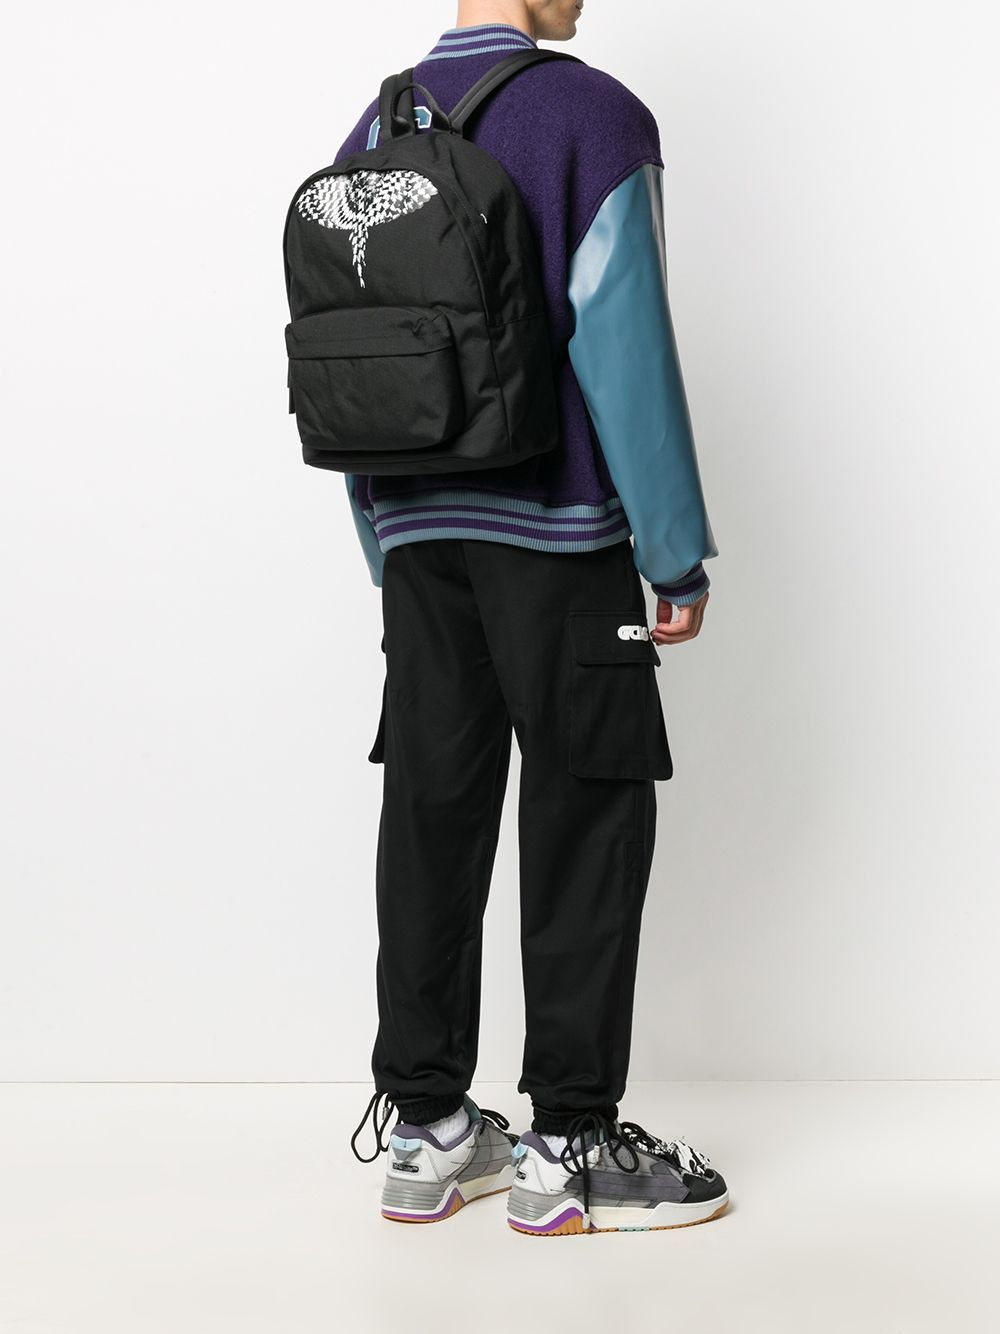 MARCELO BURLON Cross Pattern Wings Backpack - Maison De Fashion